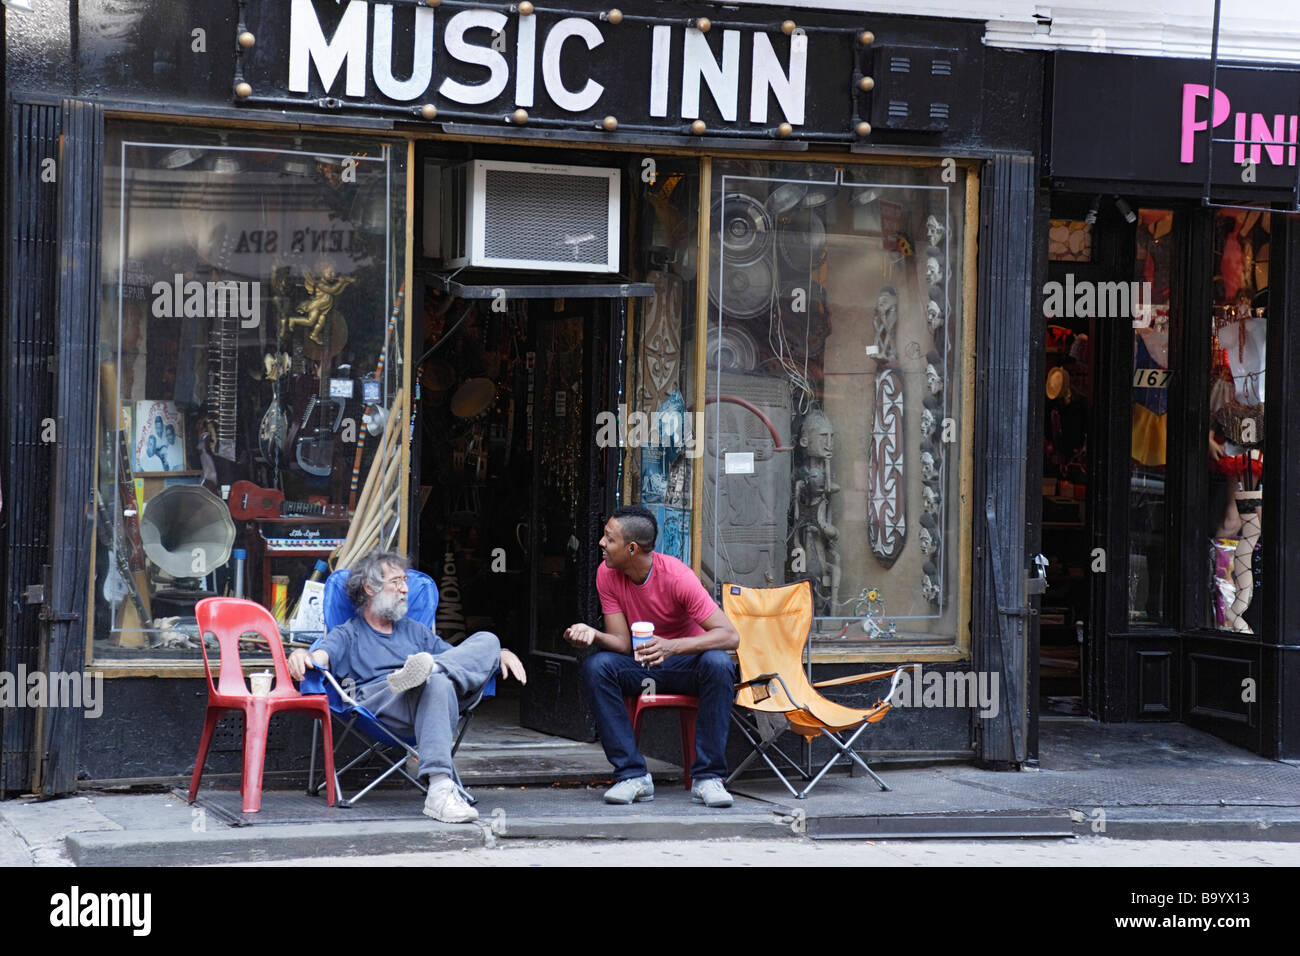 Two men sitting in front of a music store Greenwich Village Manhattan New York City New York USA - Stock Image